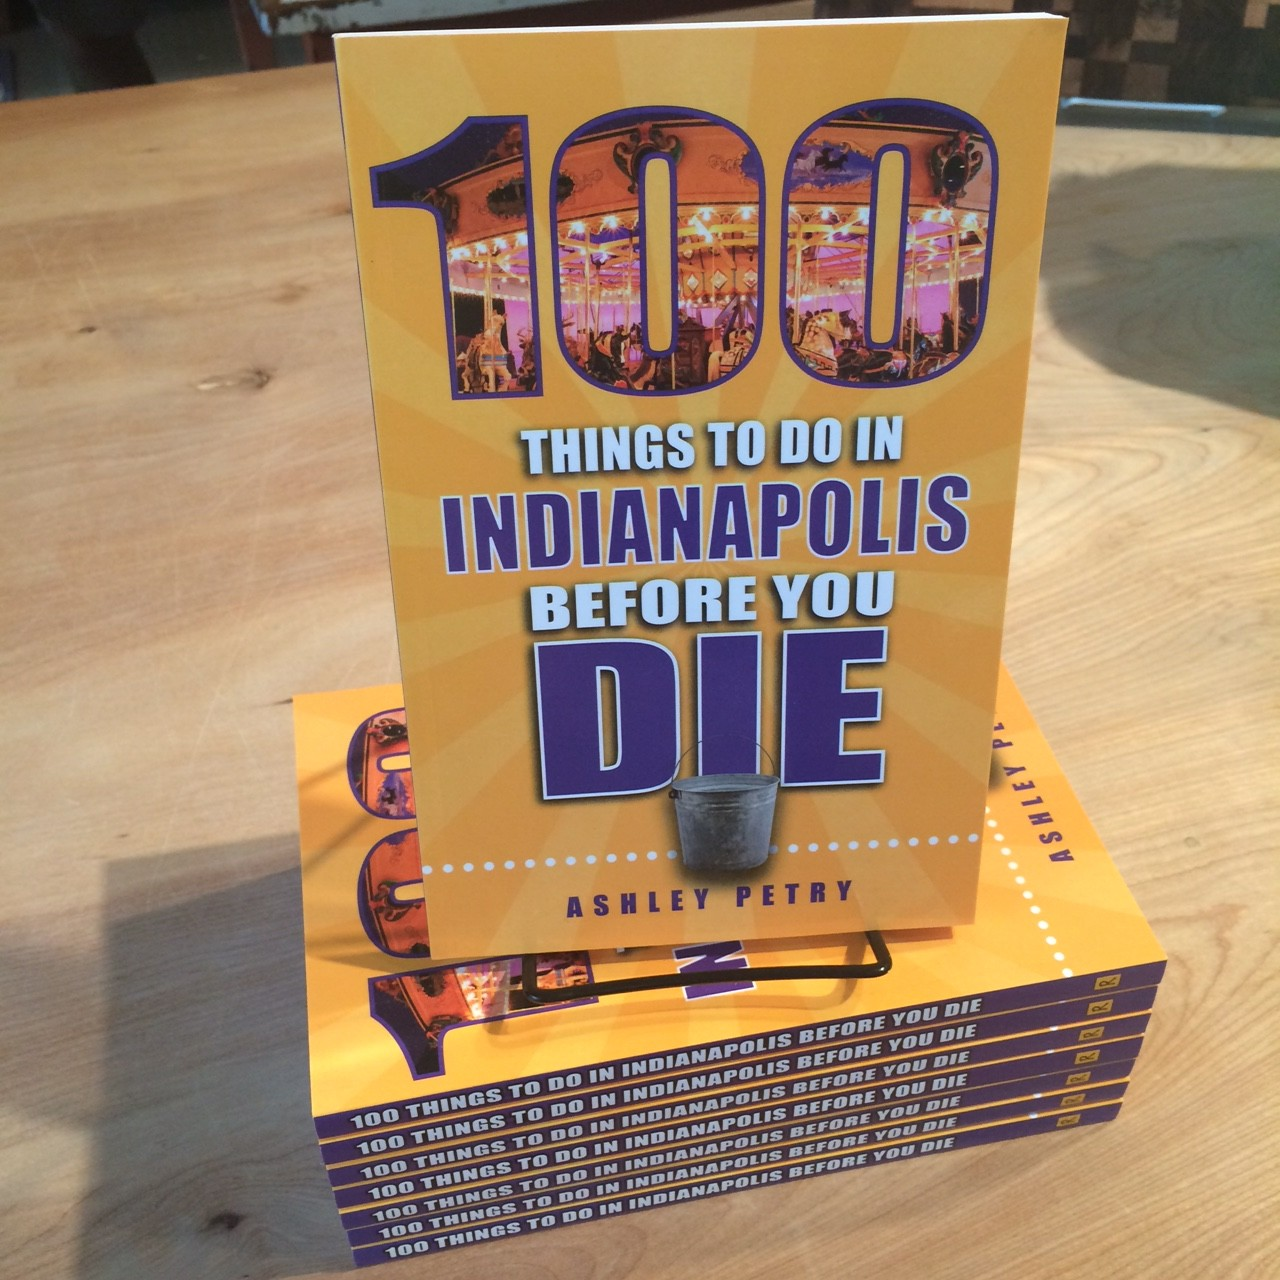 ... 11:30am- 2pm we will have author Ashley Petry in the store to do a book  signing for her recent book 100 Things to do in Indianapolis Before You Die.